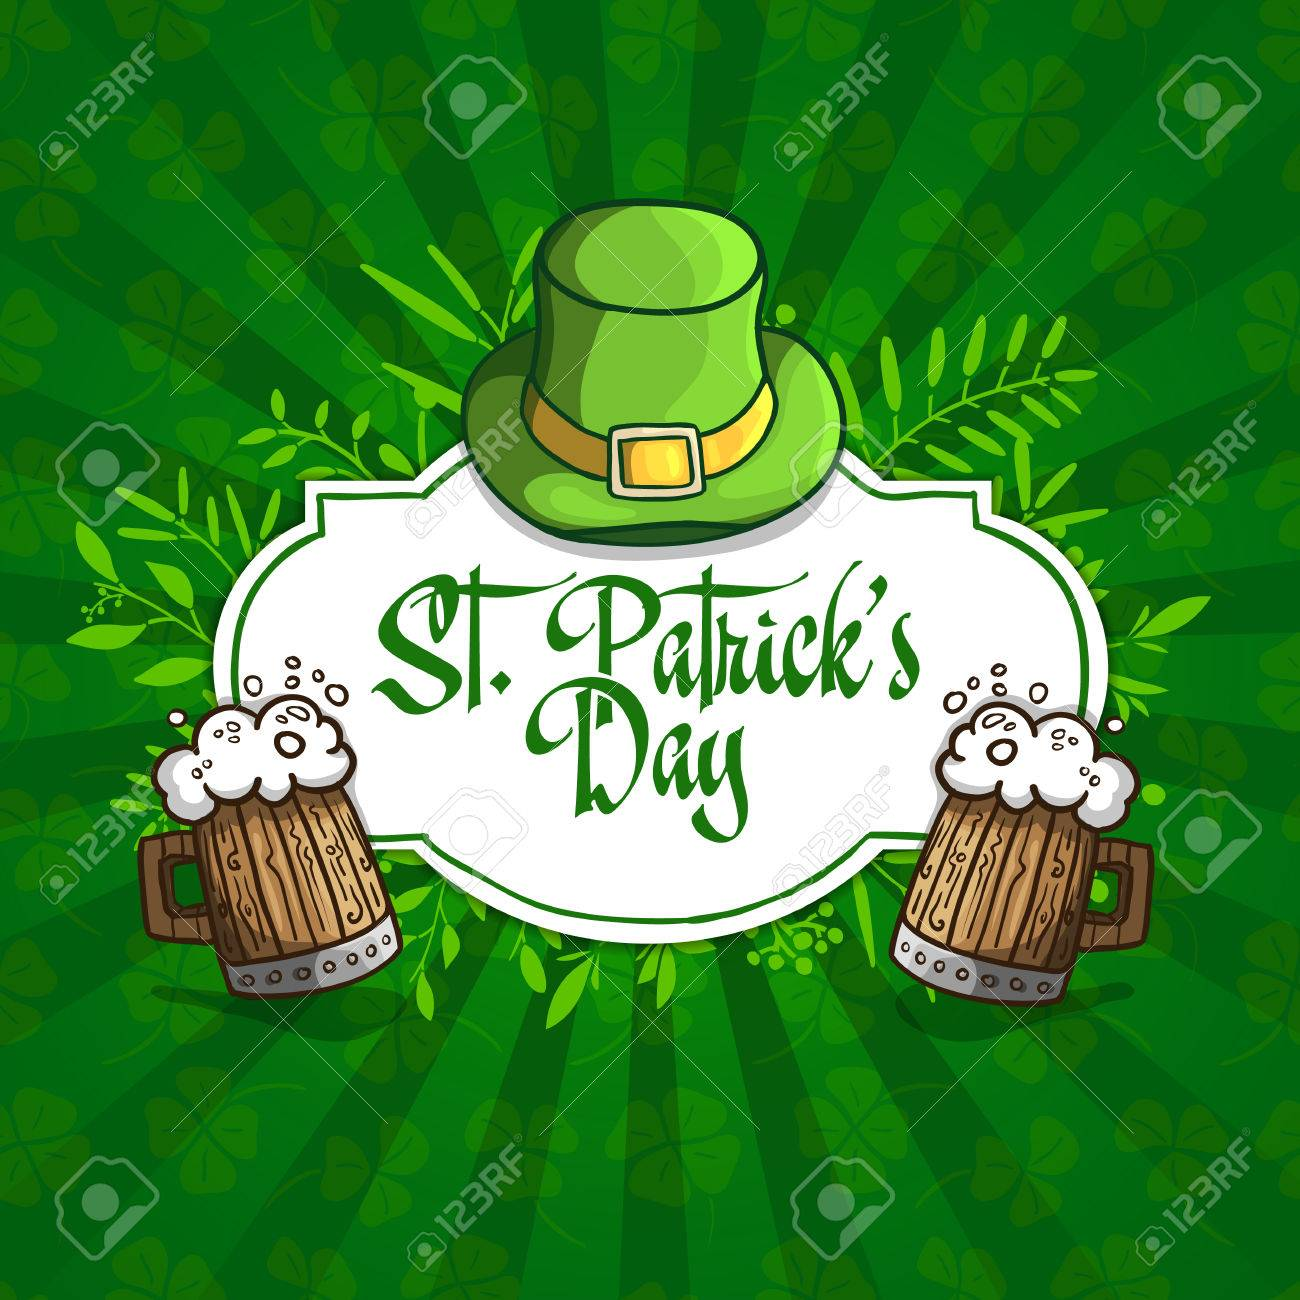 template design banners logos signs posters for st patrick u0027s